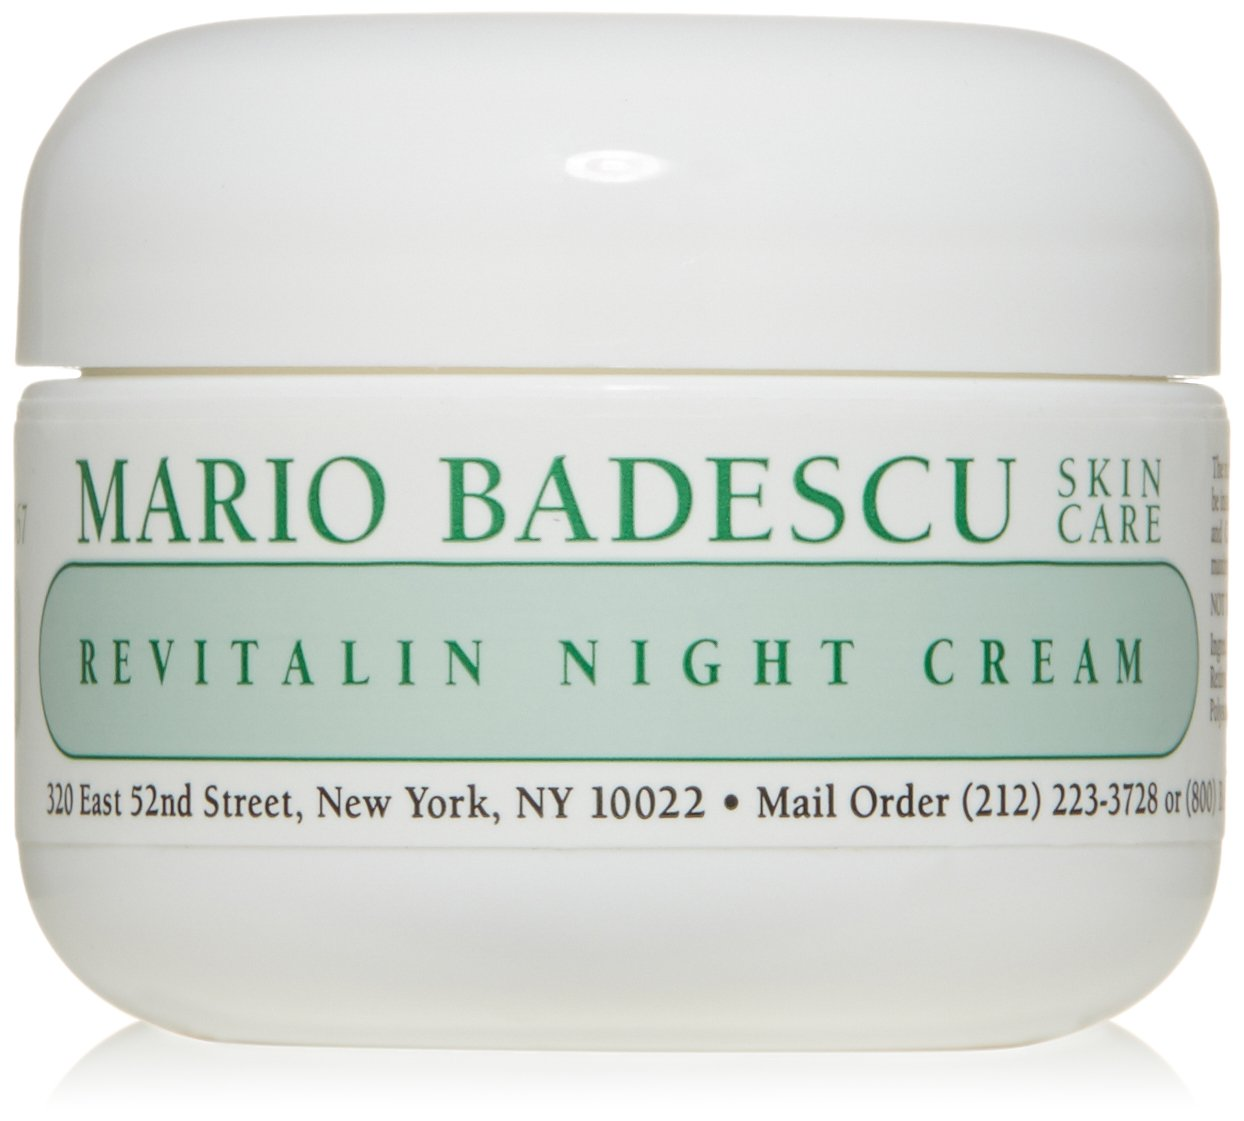 Mario Badescu Revitalin Night Cream, 1 oz.